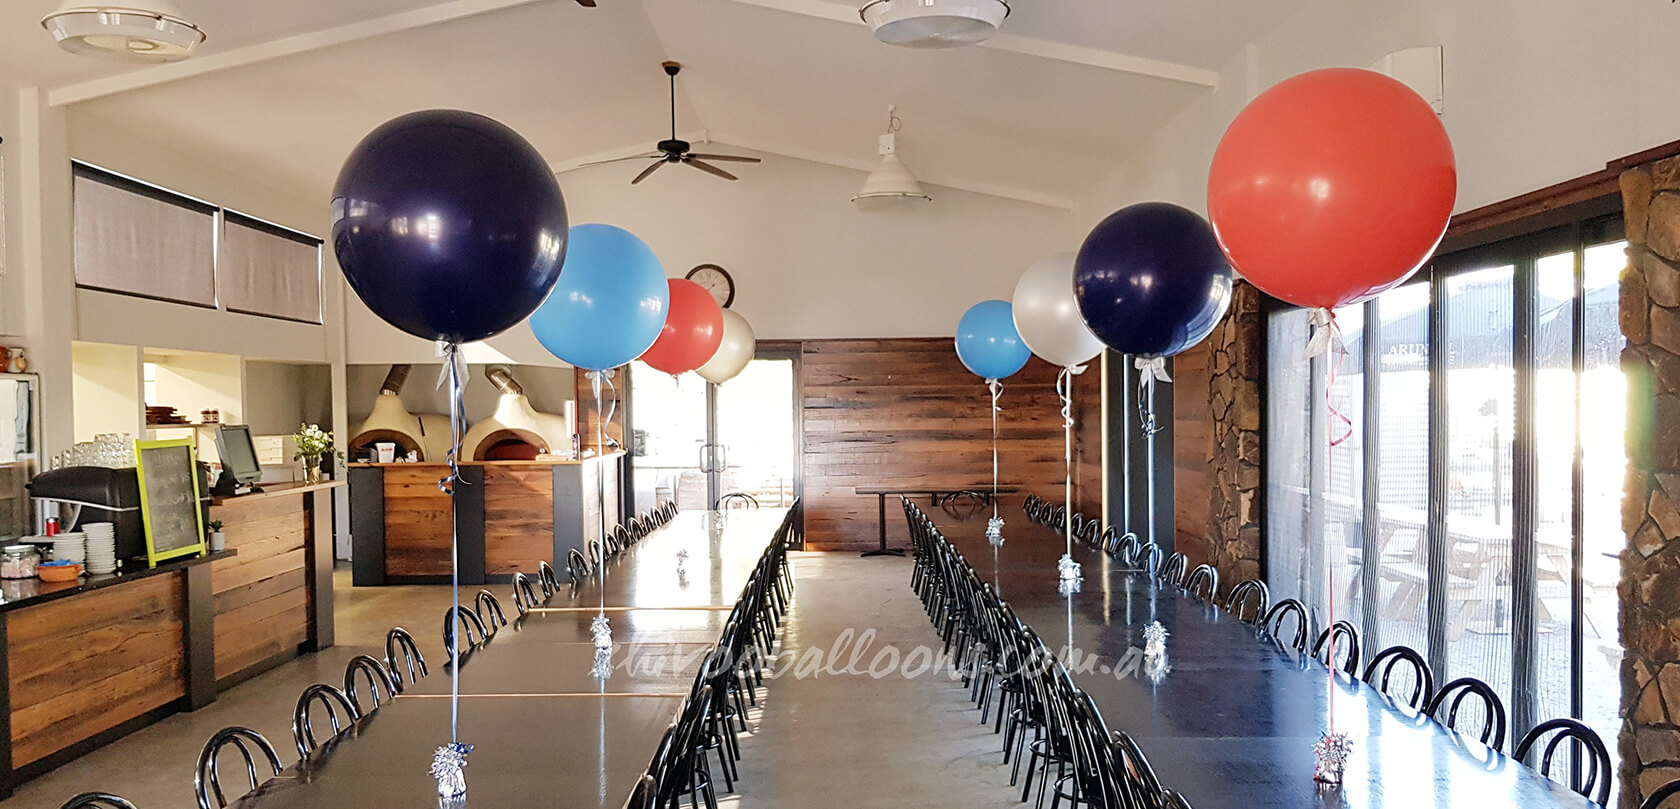 CE-51 - corporate - custom-made balloon decor Coburg North - shivoo balloons and decor specialists in coburg north